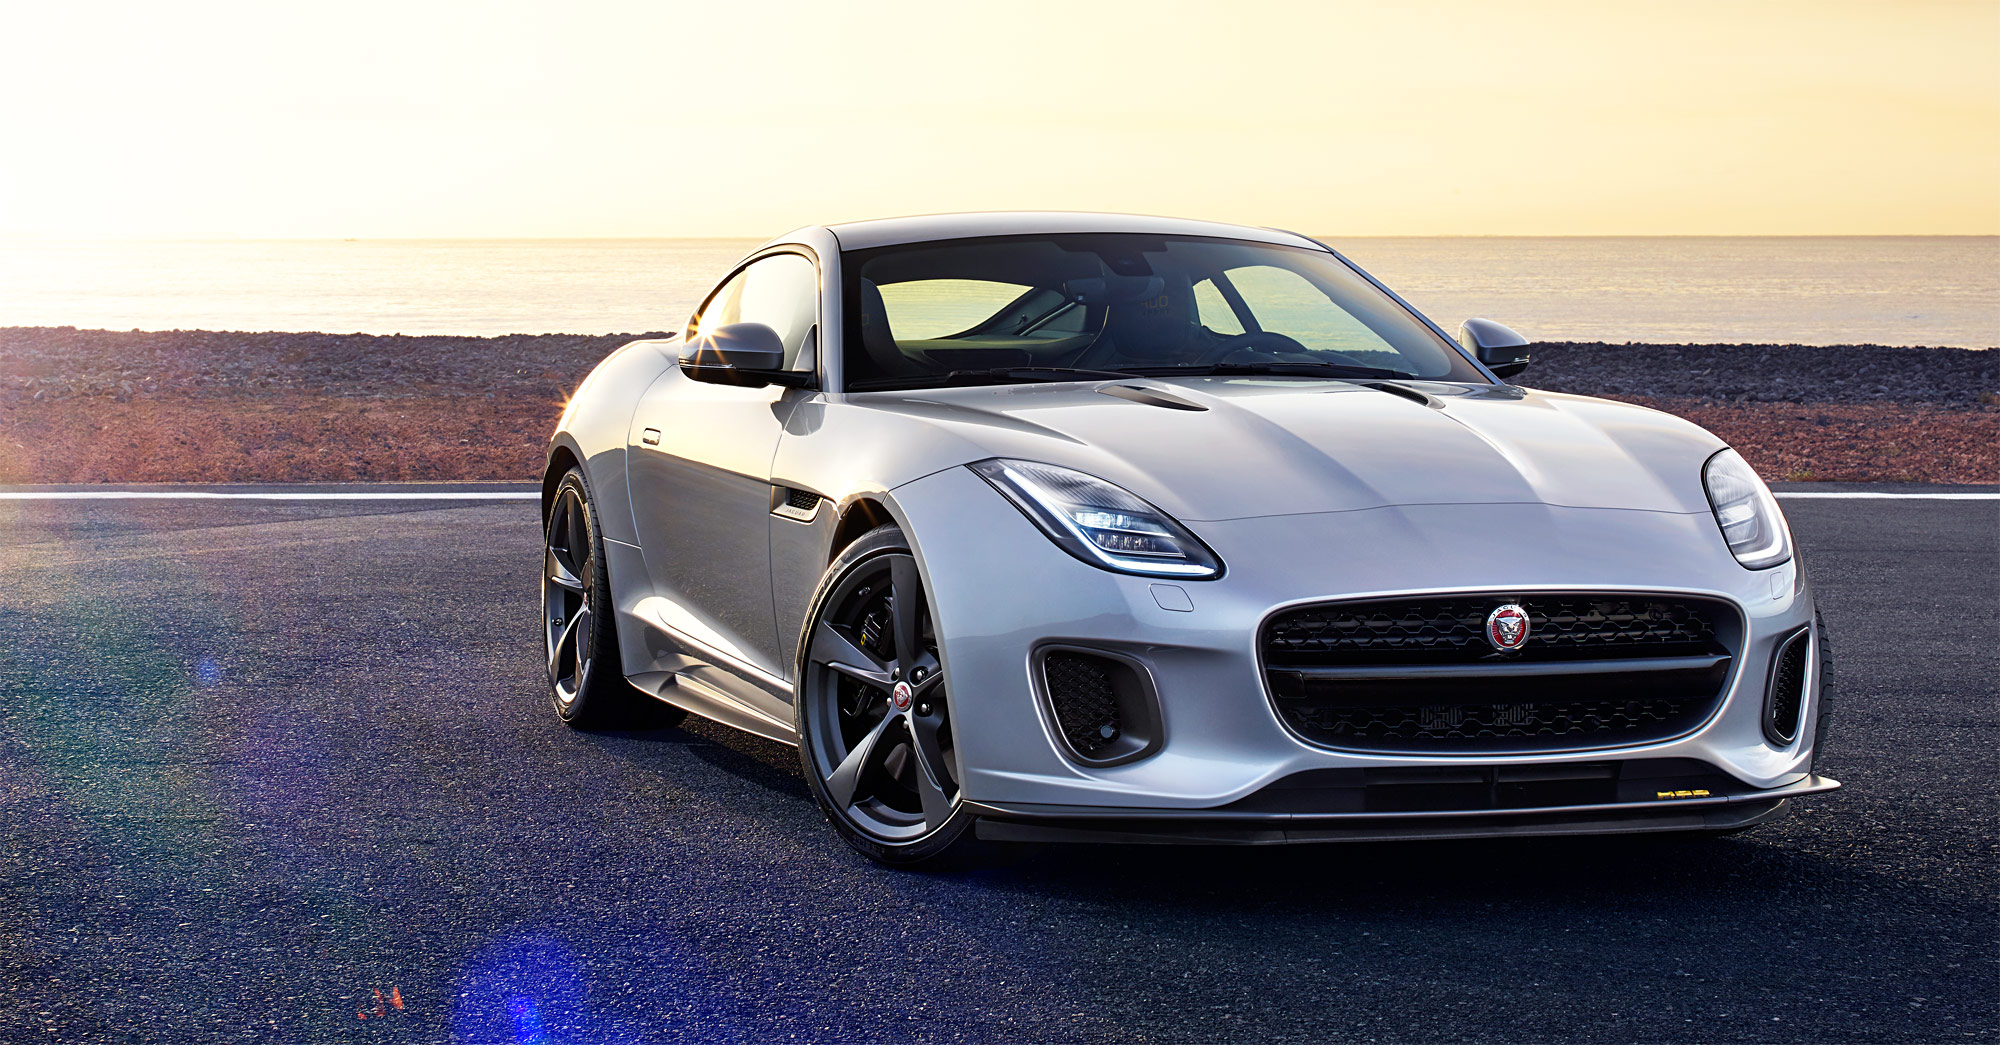 Style & Substance In Abundance – The New Jaguar F-TYPE